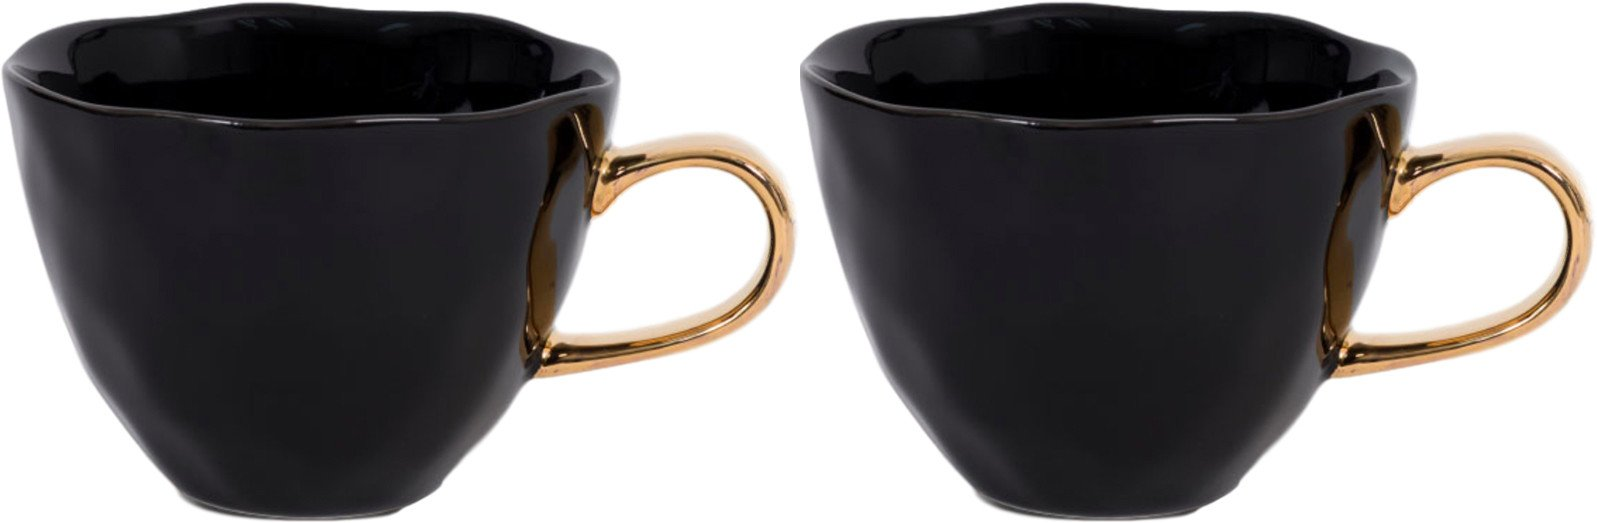 Pair of Good Morning Cups 350 ml Black, Urban Nature Culture